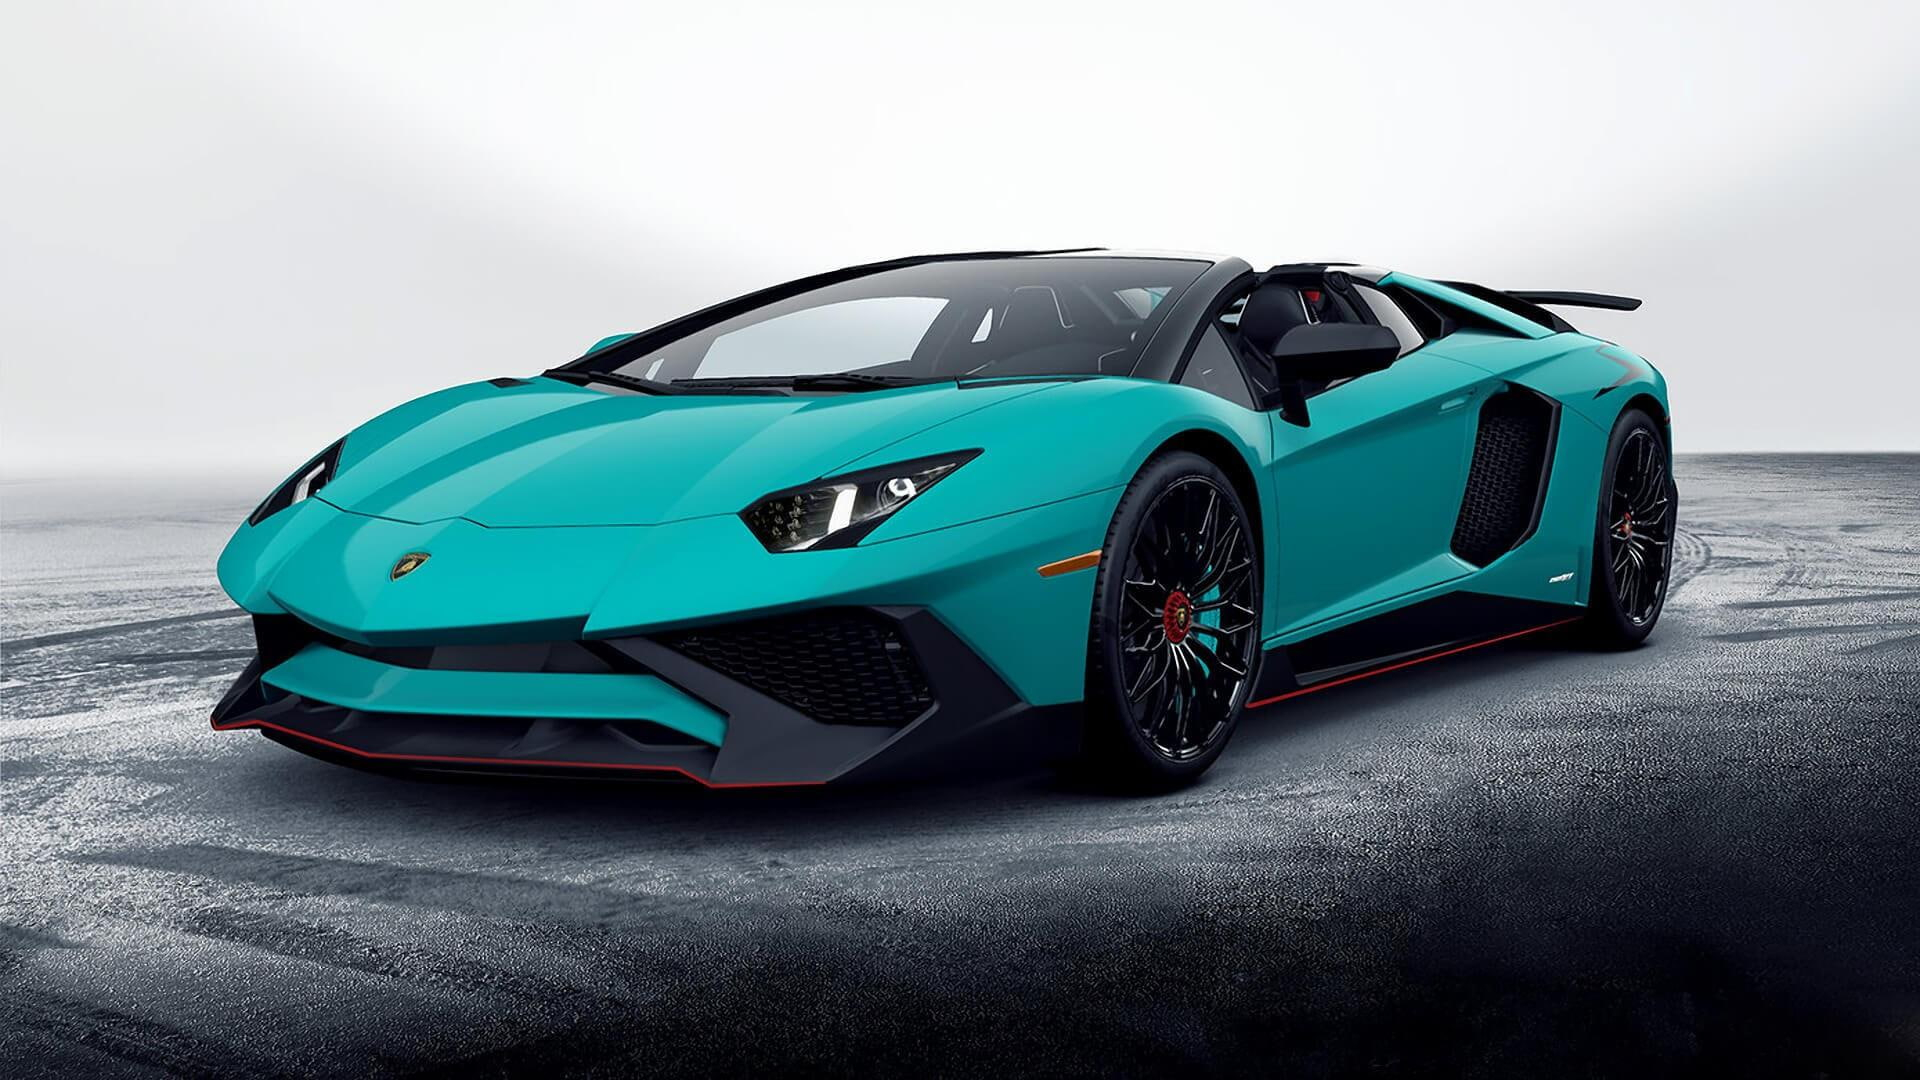 How does the lamborghini aventador compare to the lamborghini murcielago? Wallpaper Lamborghini Lamborghini Aventador Superveloce Sport Car Wallpaper For You Hd Wallpaper For Desktop Mobile